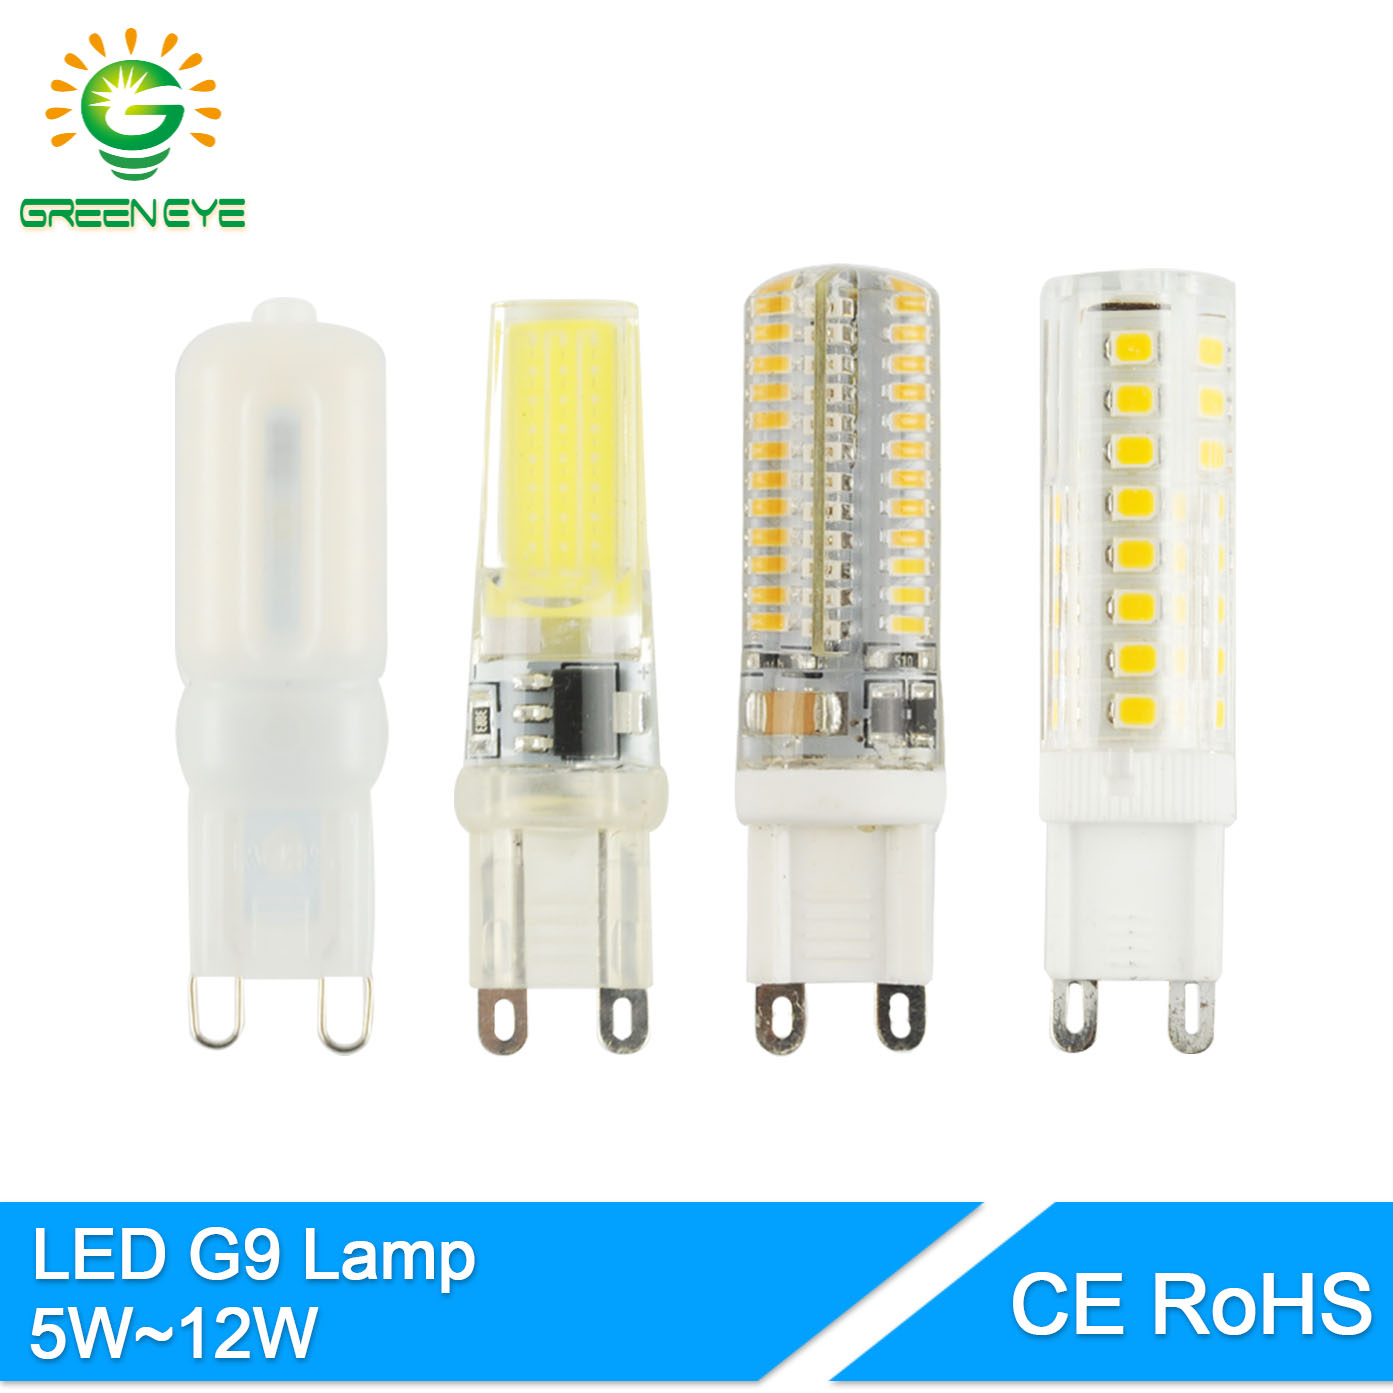 GreenEye 5W~12W LED G9 Bulb Dimmable COB AC 220V LED Light Replace Halogen Lamp G9 Led Light Crystal 6W 9W 10W Silicone Ceramics